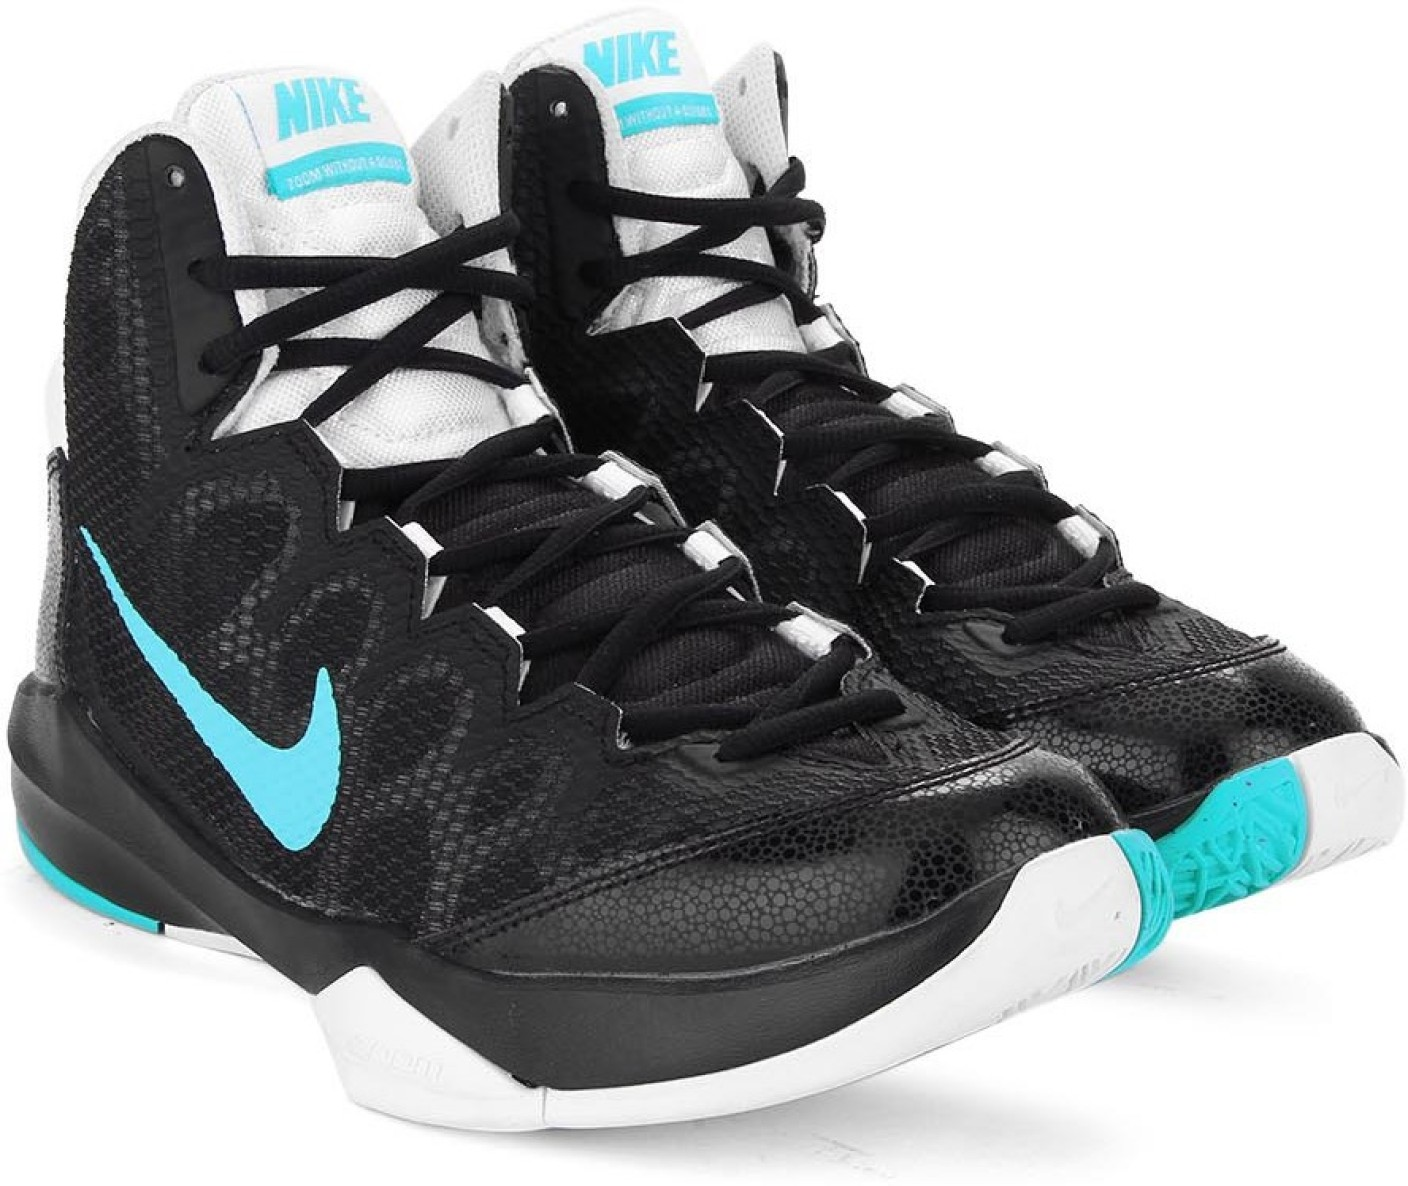 Buy Cheap Nike Zoom Without A Doubt - Black / Beta Blue / White / Pure Platinum Shop No.51061101